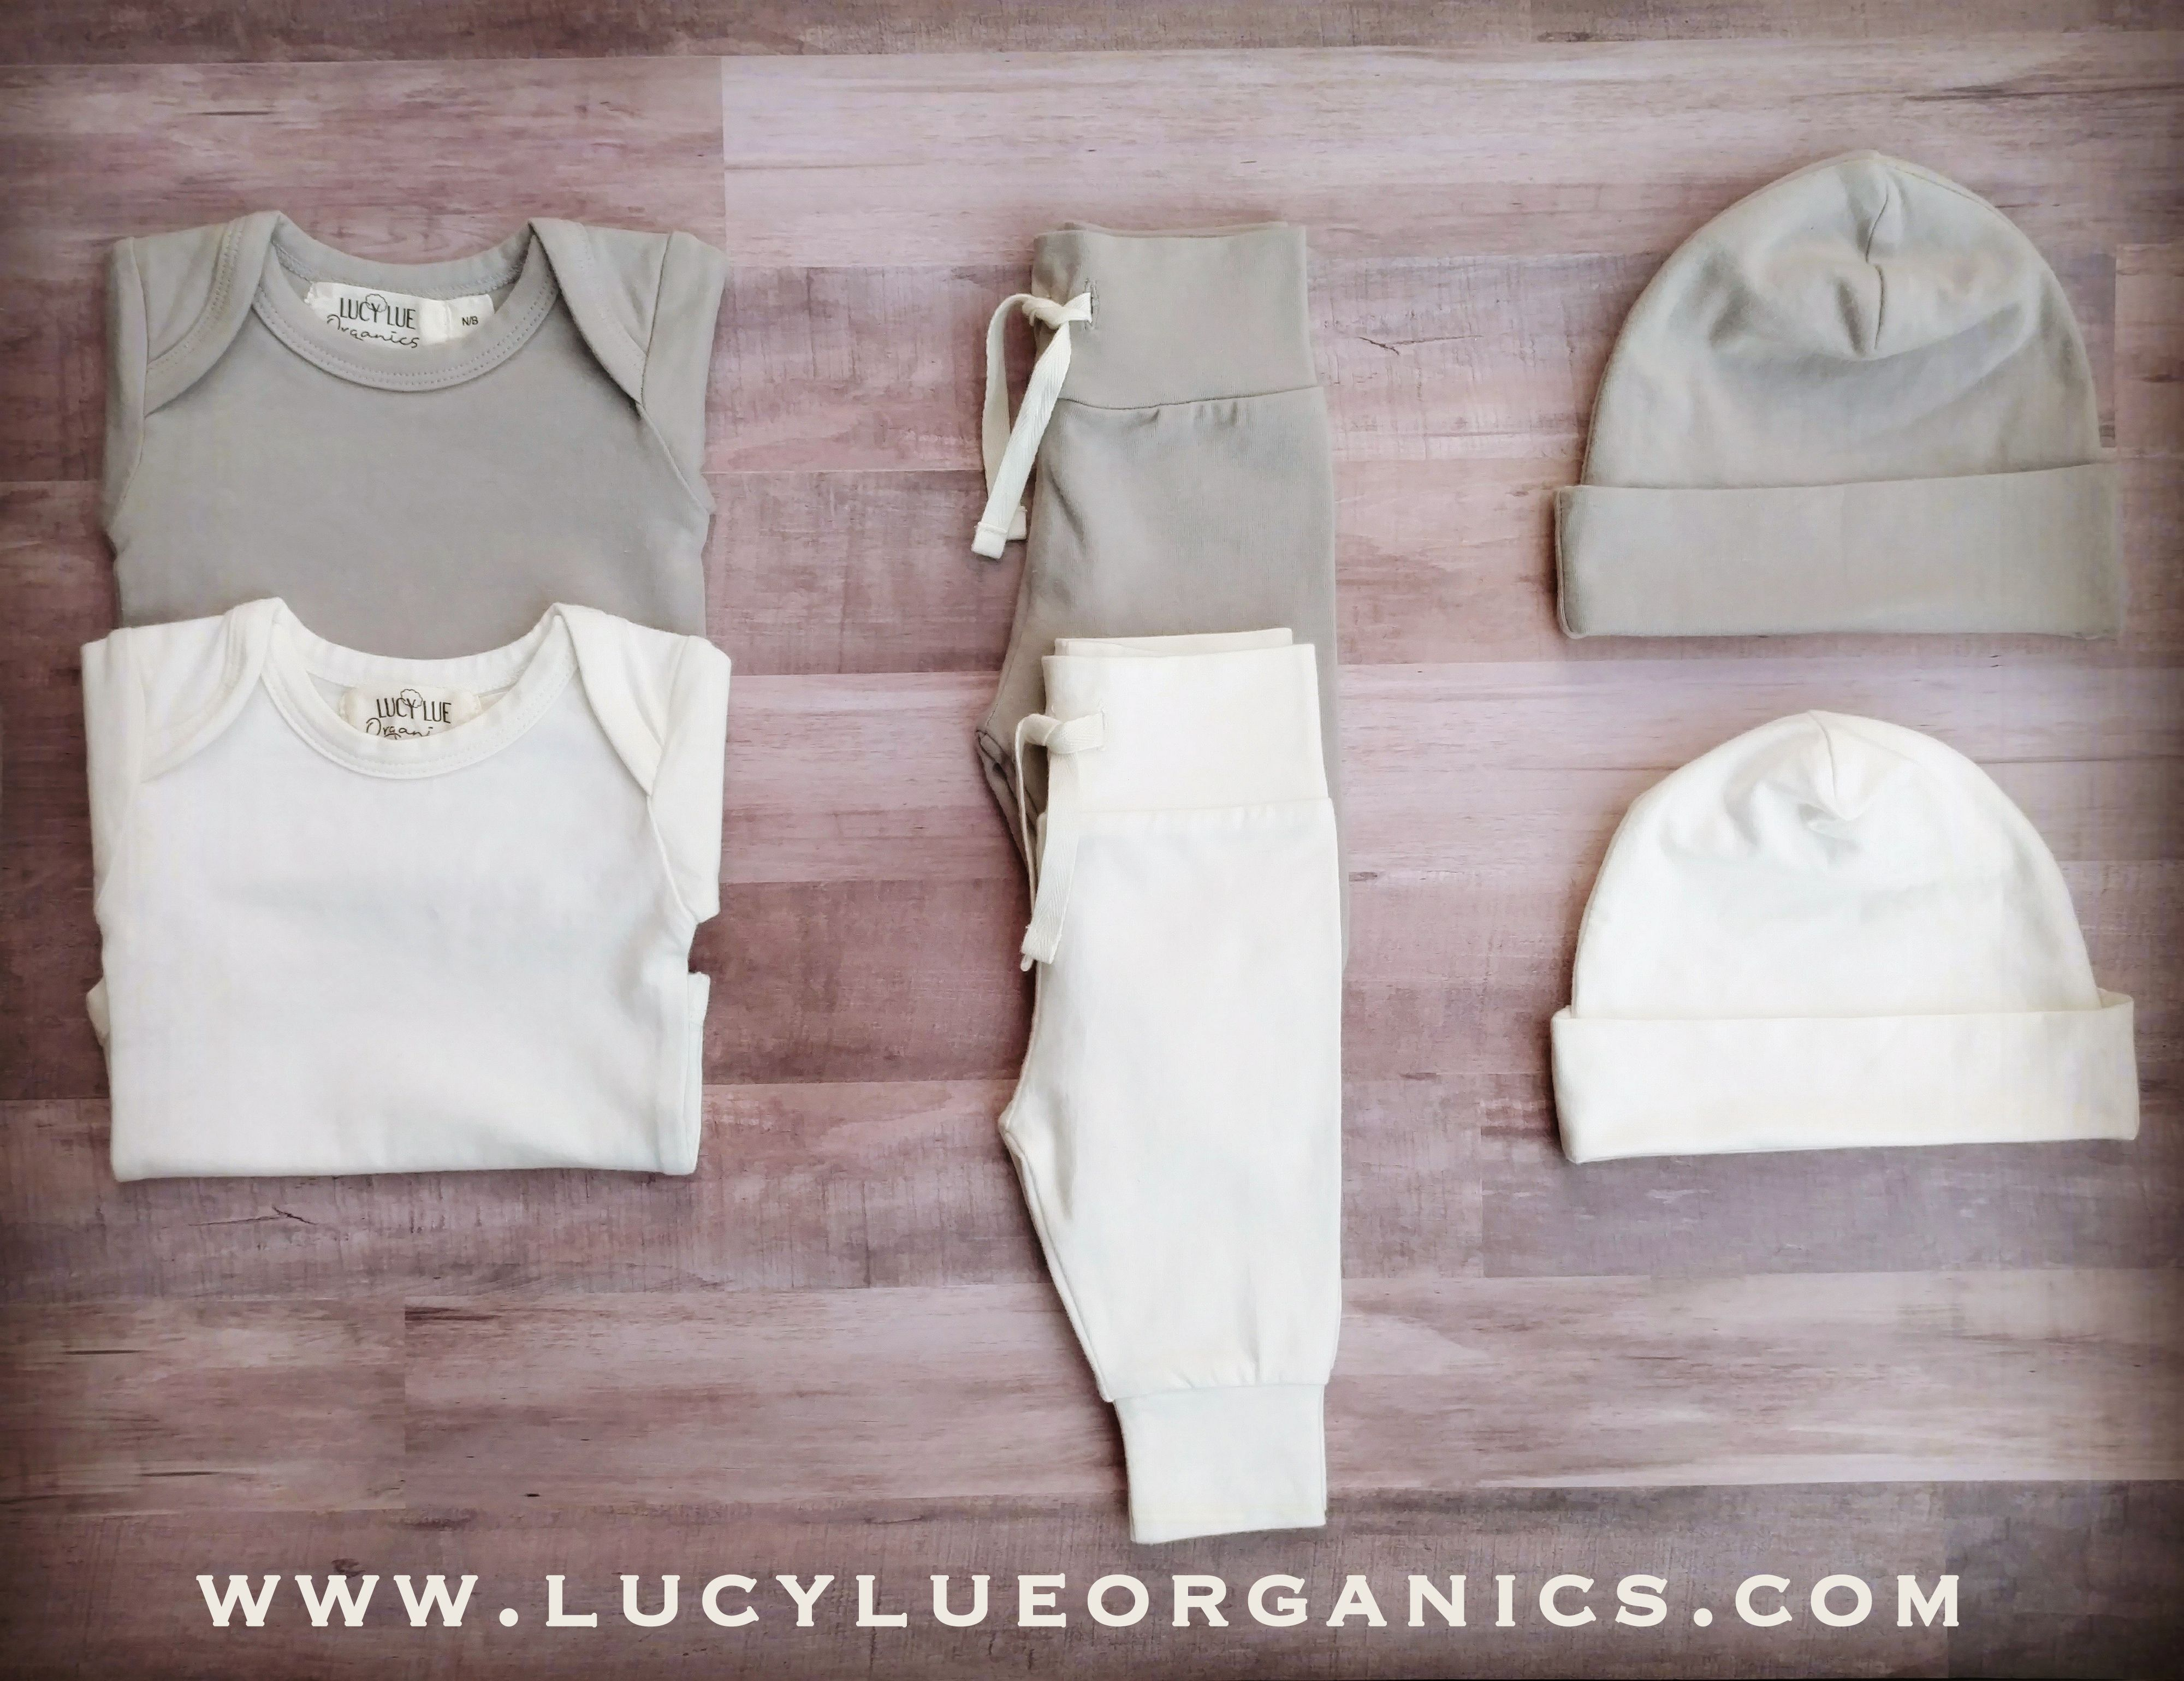 Shop Lucy Lue Organics today Luxury organic baby clothes that are